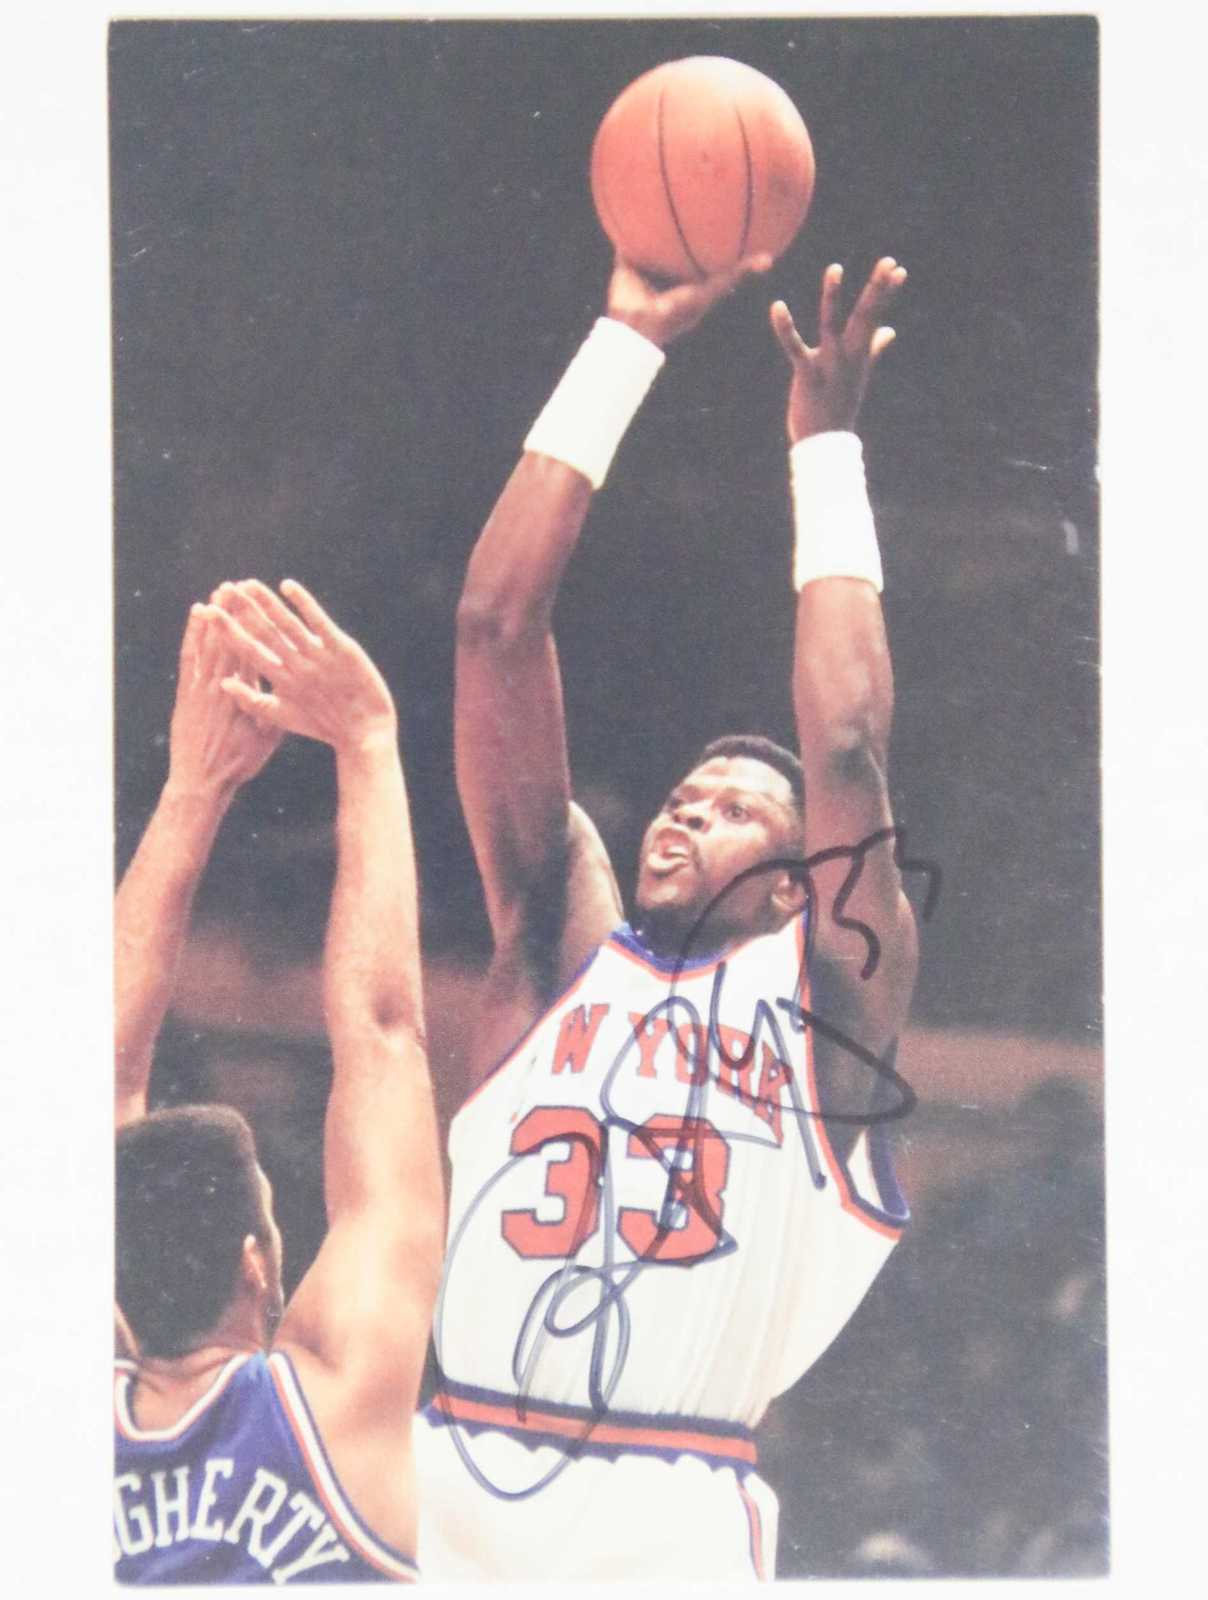 Patrick Ewing Signed Autographed Postcard - New York Knicks